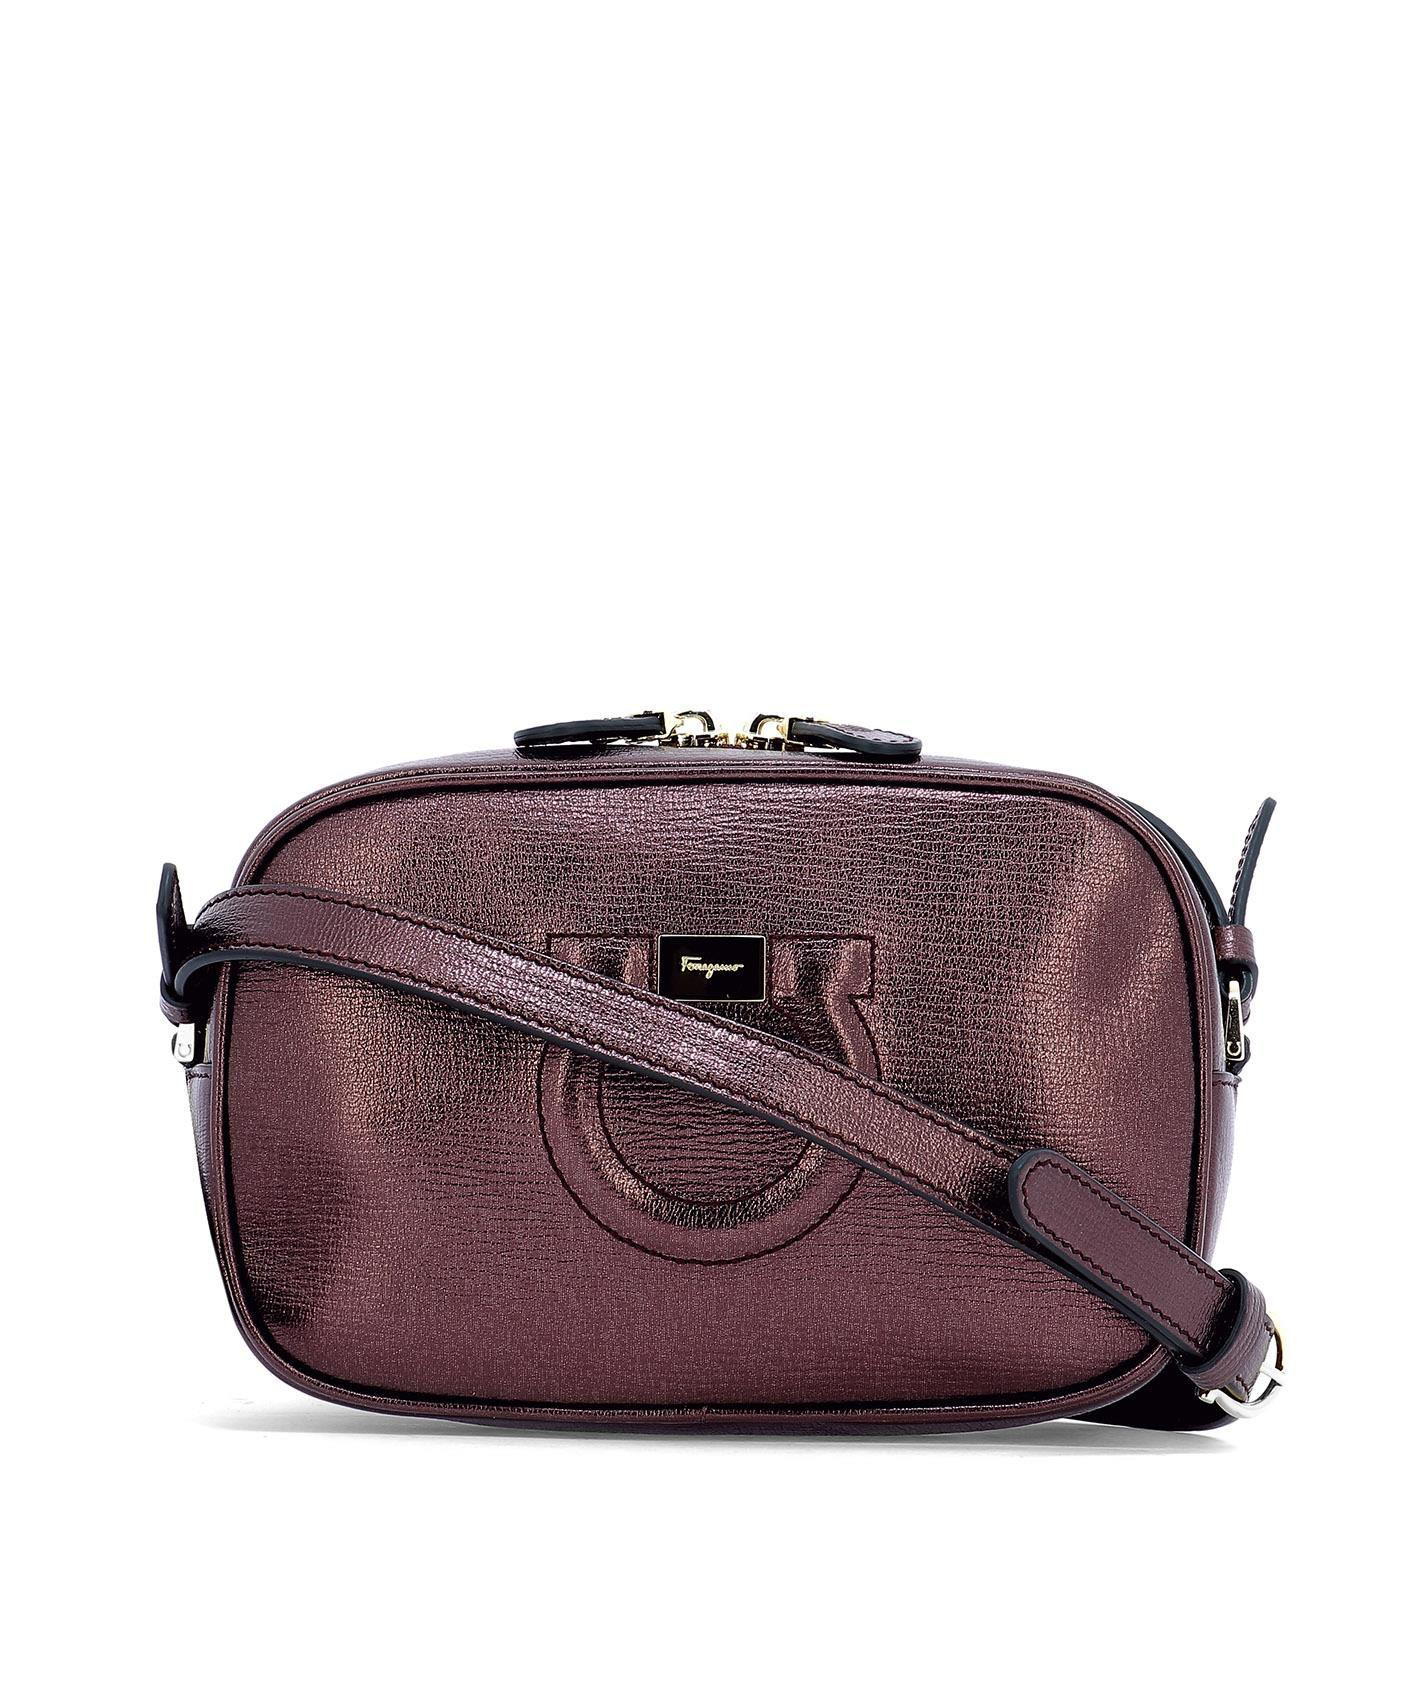 Lyst - Ferragamo Women s Purple Leather Shoulder Bag in Purple ca6d3dfd15f23